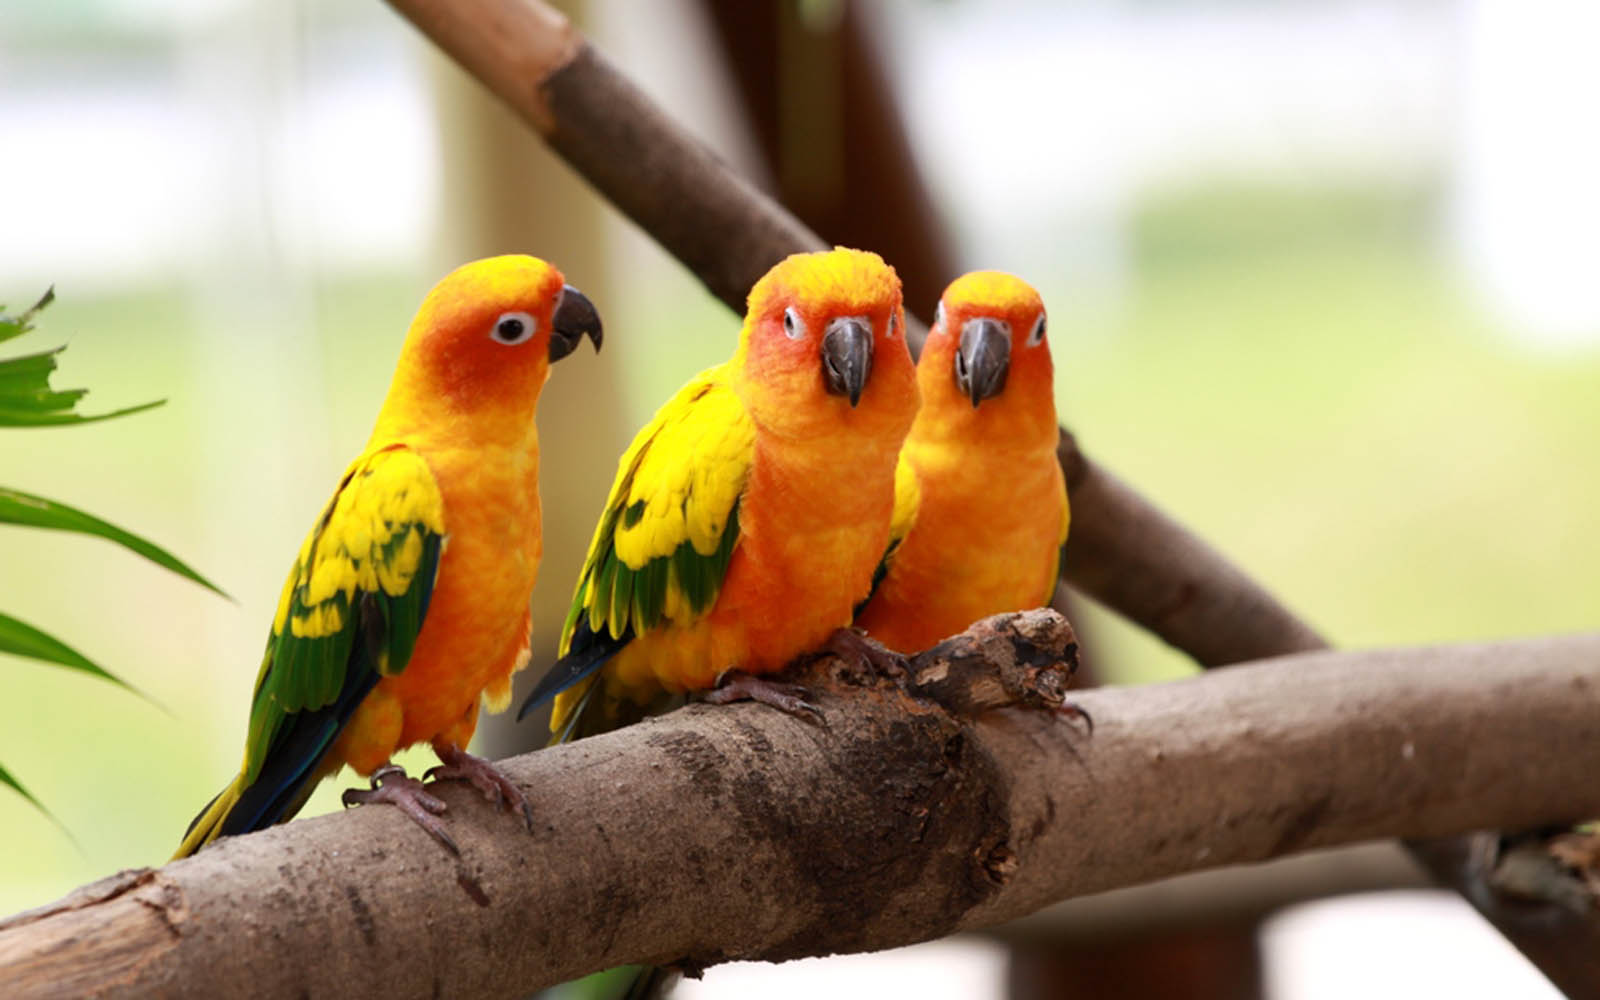 Love Birds Wallpaper Images : wallpapers: Love Birds Wallpapers